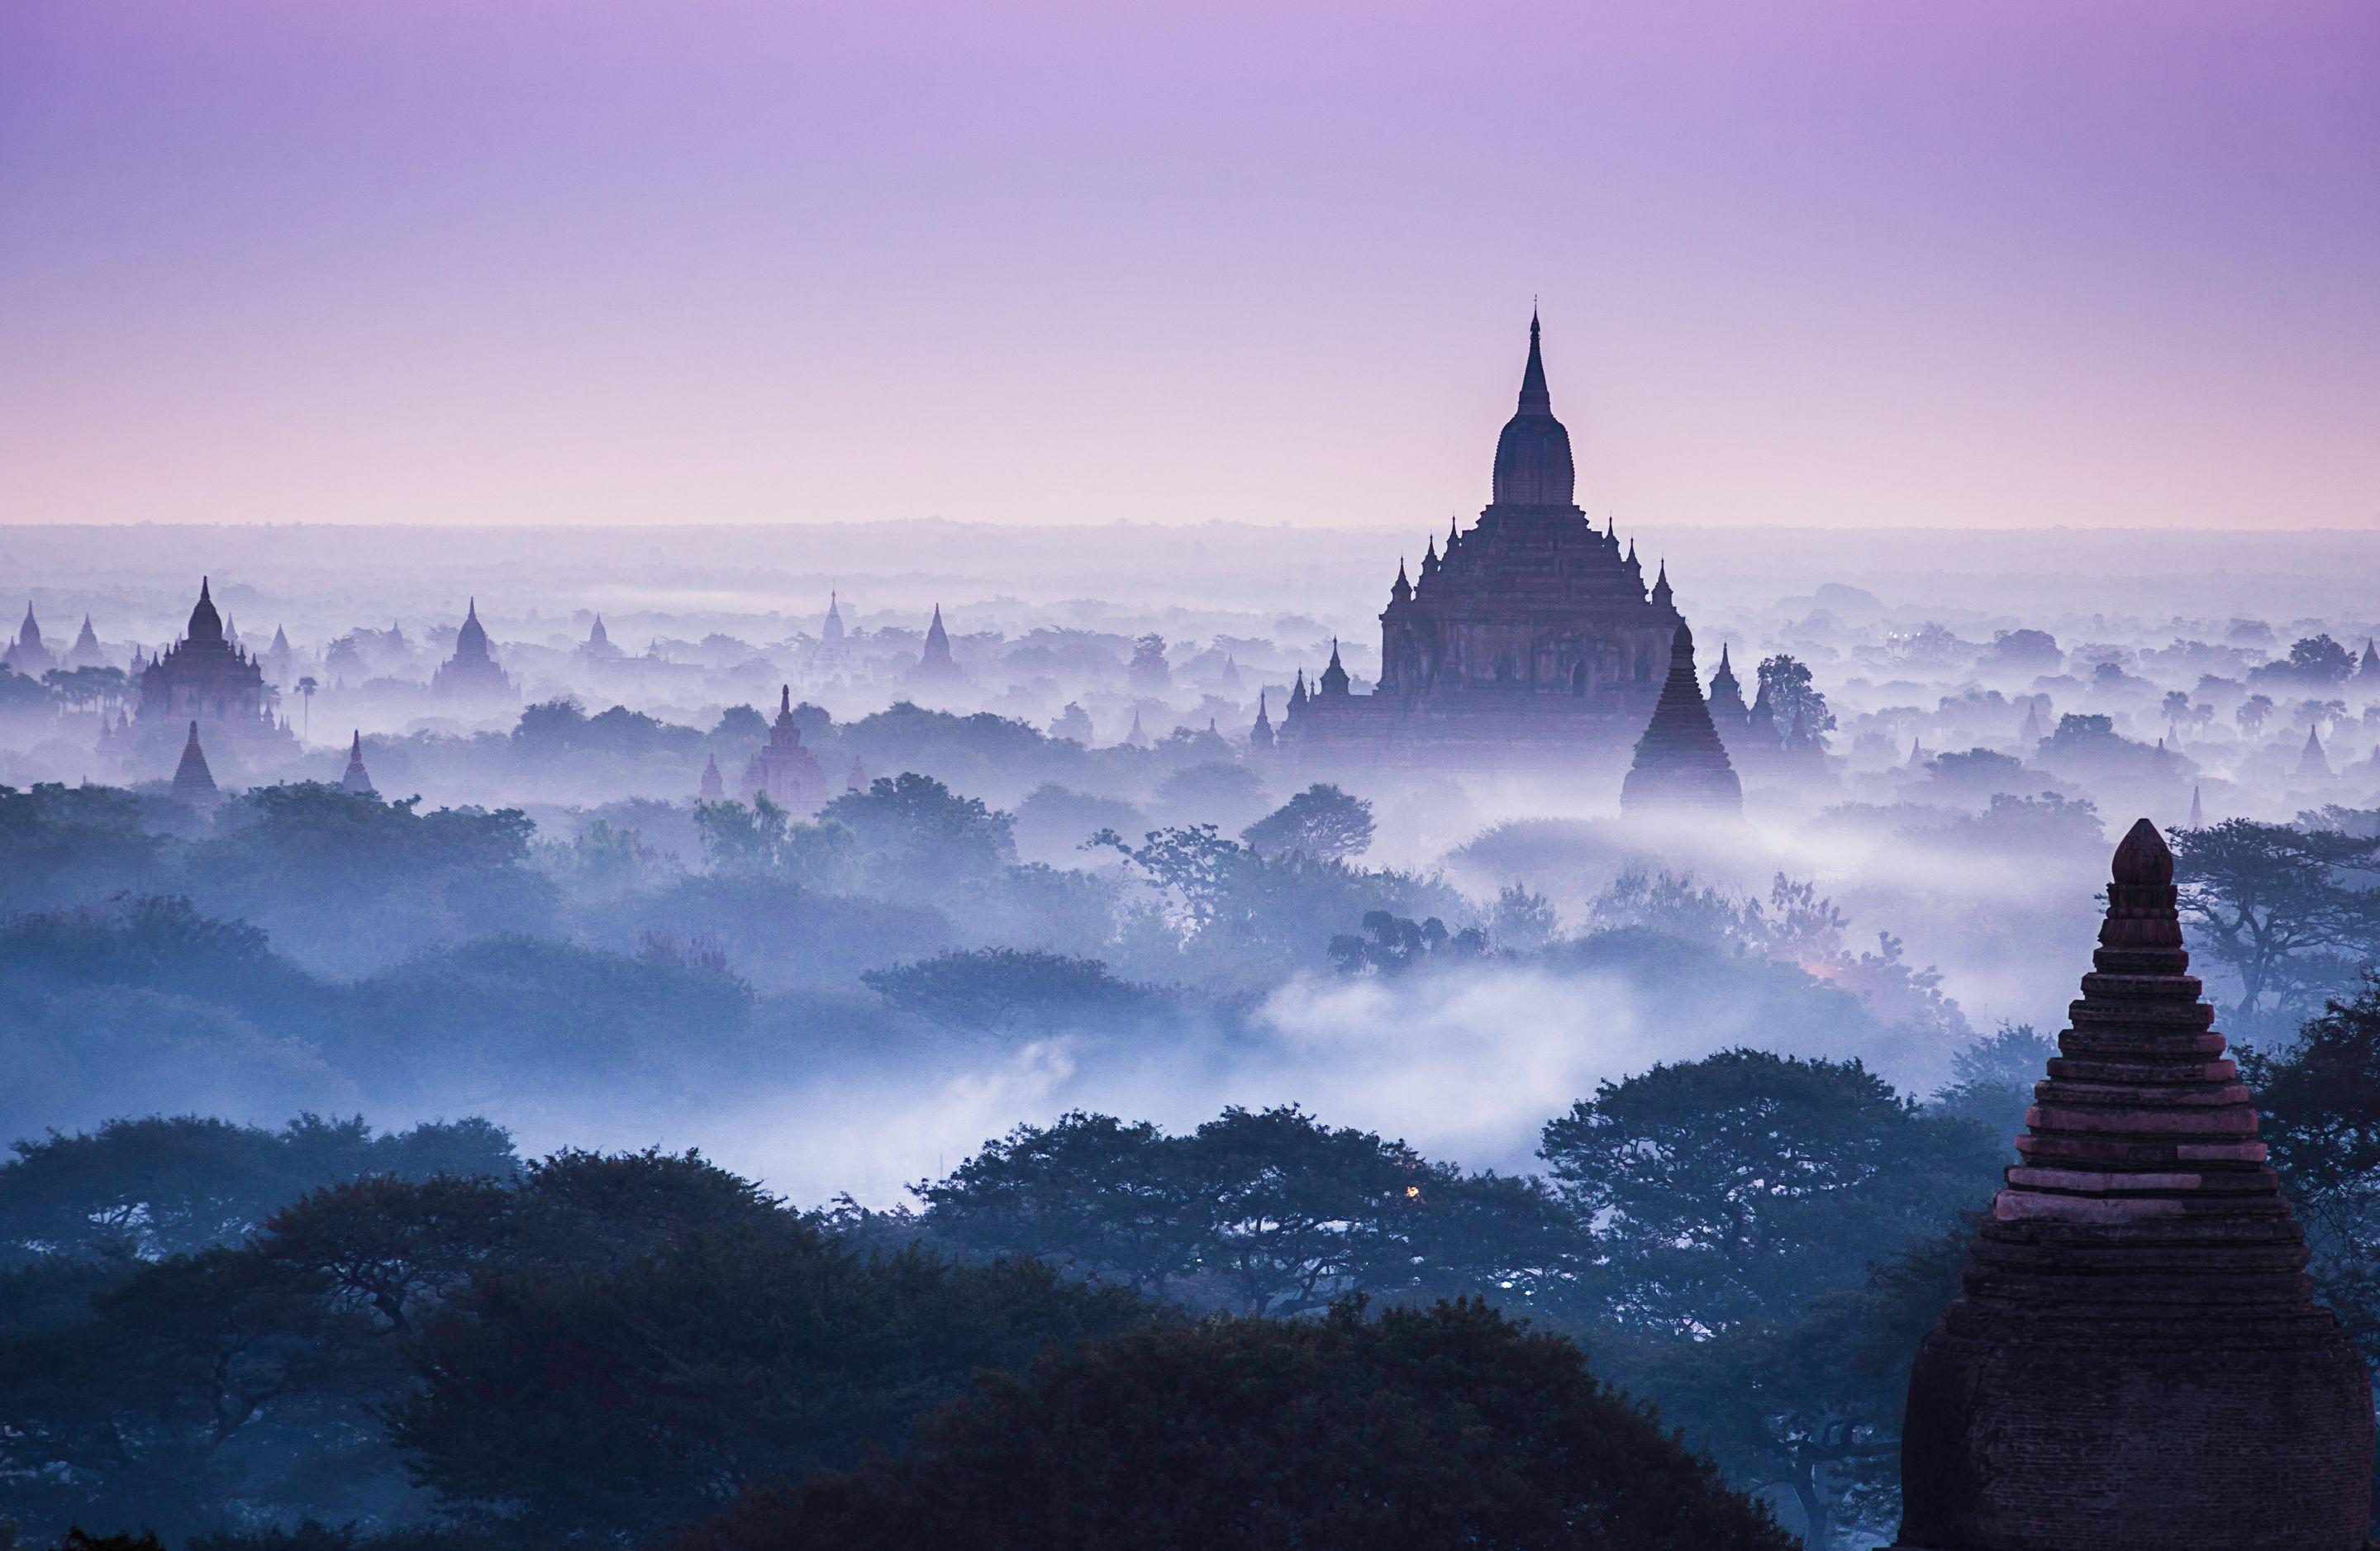 Best 57+ Myanmar Desktop Backgrounds on HipWallpapers